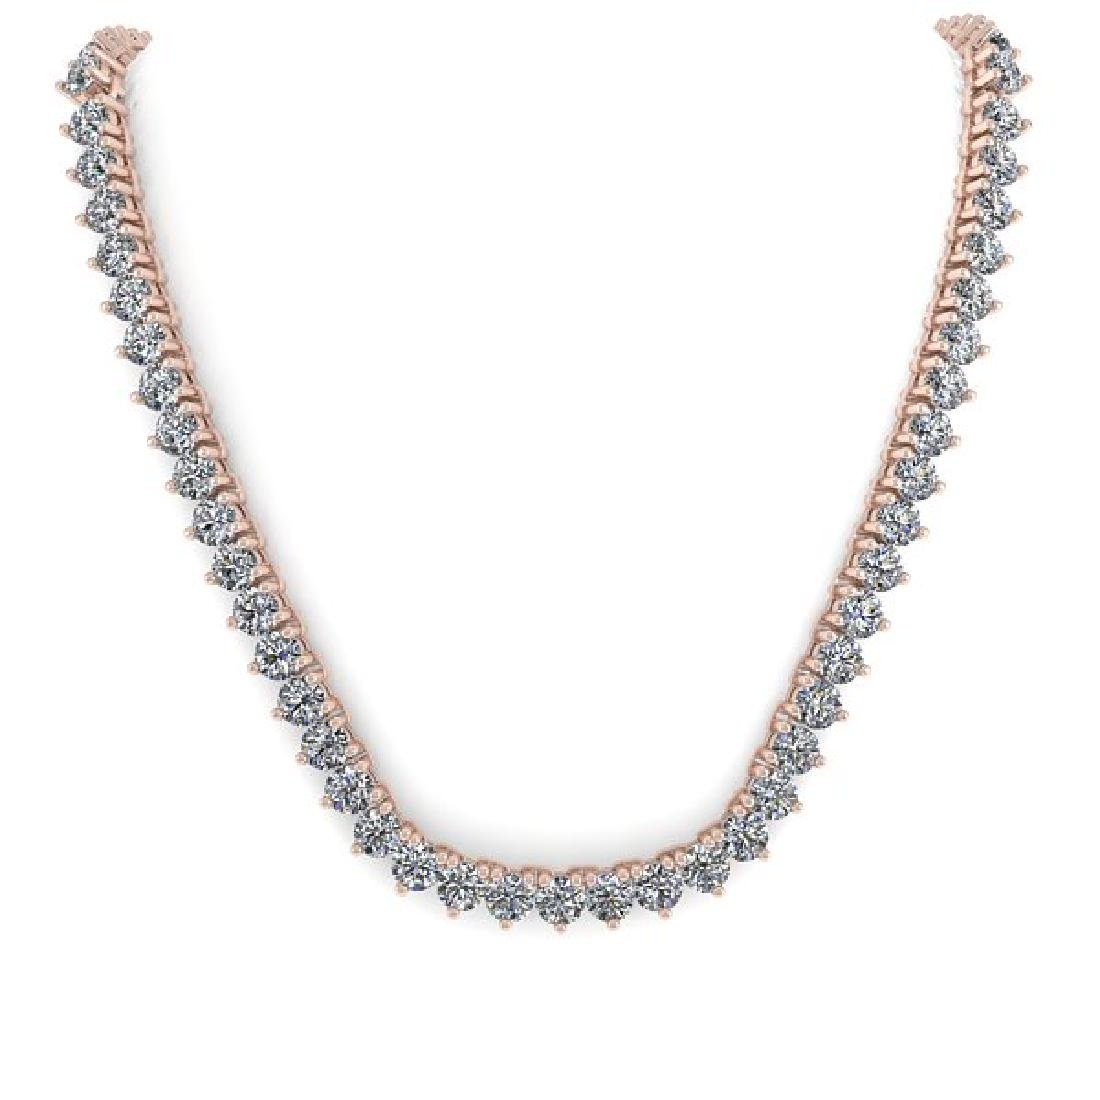 68 CTW Solitaire Certified SI Diamond Necklace 14K Rose - 3